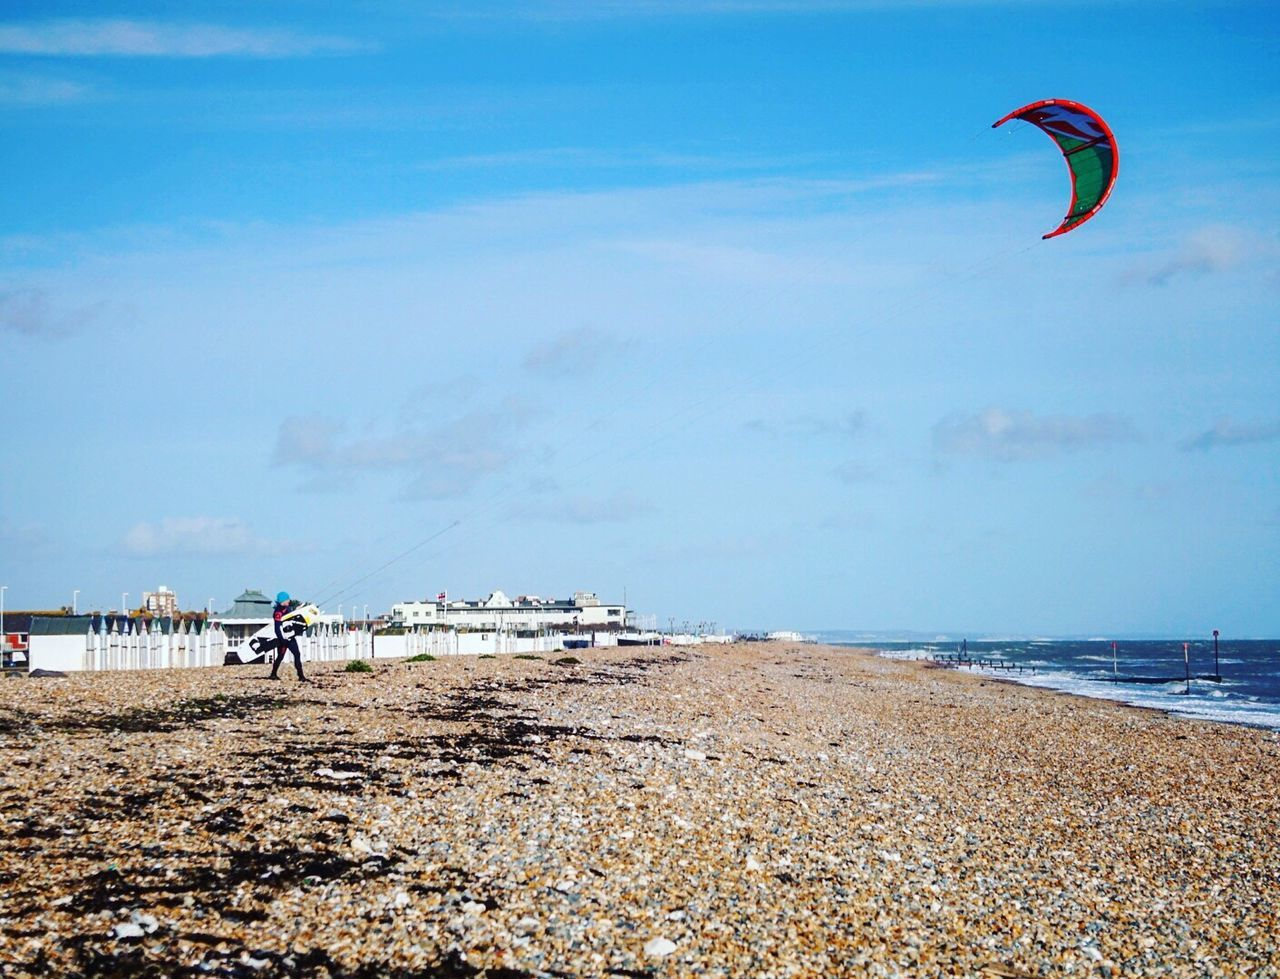 Kitesurfing 7 Sea Beach Water Sand Real People Horizon Over Water Nature Sky Lifestyles Adventure Shore Outdoors Beauty In Nature Leisure Activity Scenics Day Paragliding Extreme Sports Parachute Vacations Worthing Kitesurfing Kiteboarding